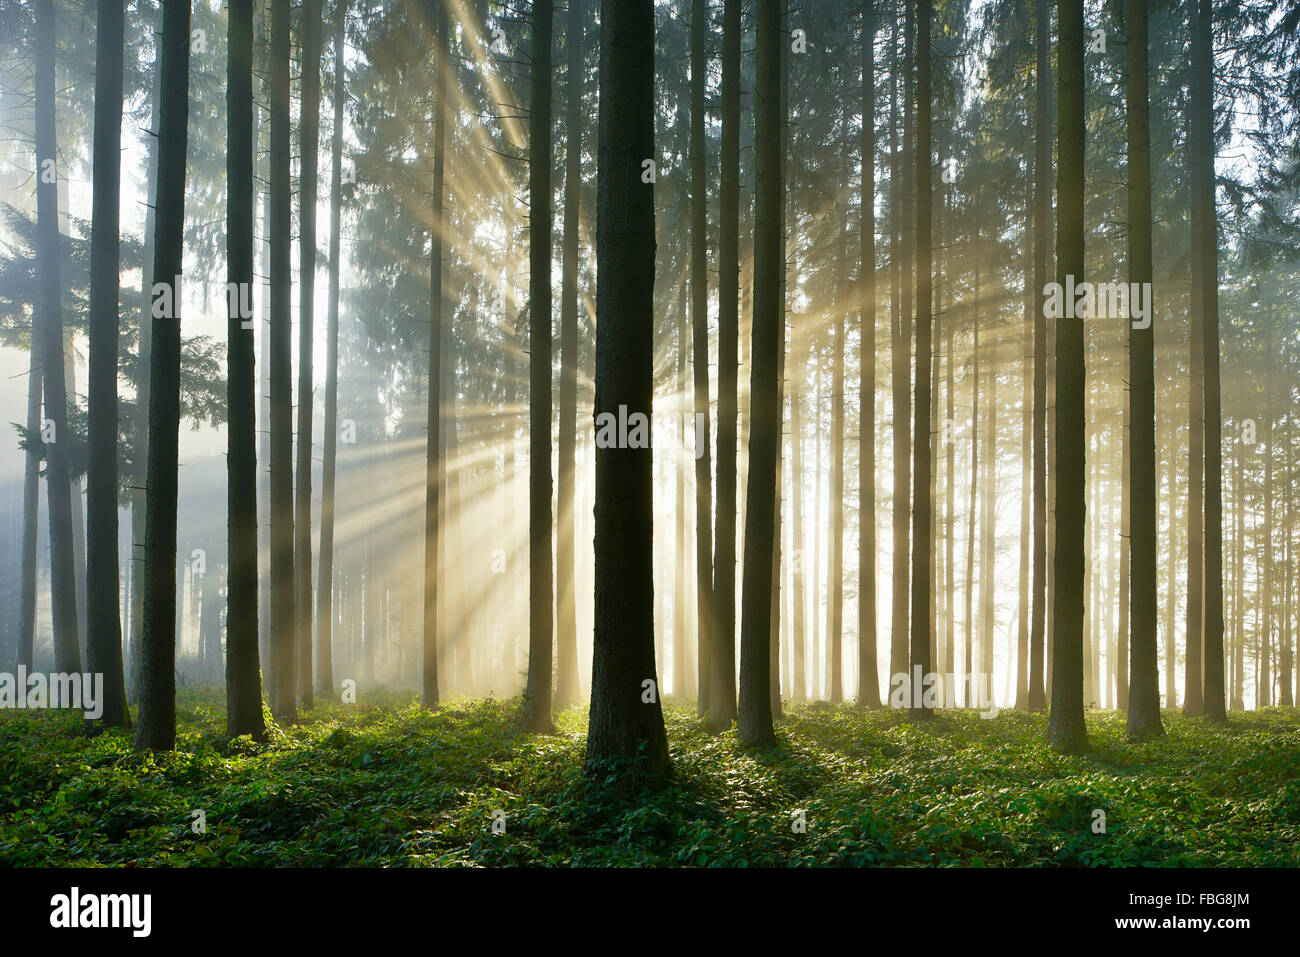 Spruce forest with sunbeams through mist, Lindenberg, Canton of Aargau, Switzerland - Stock Image